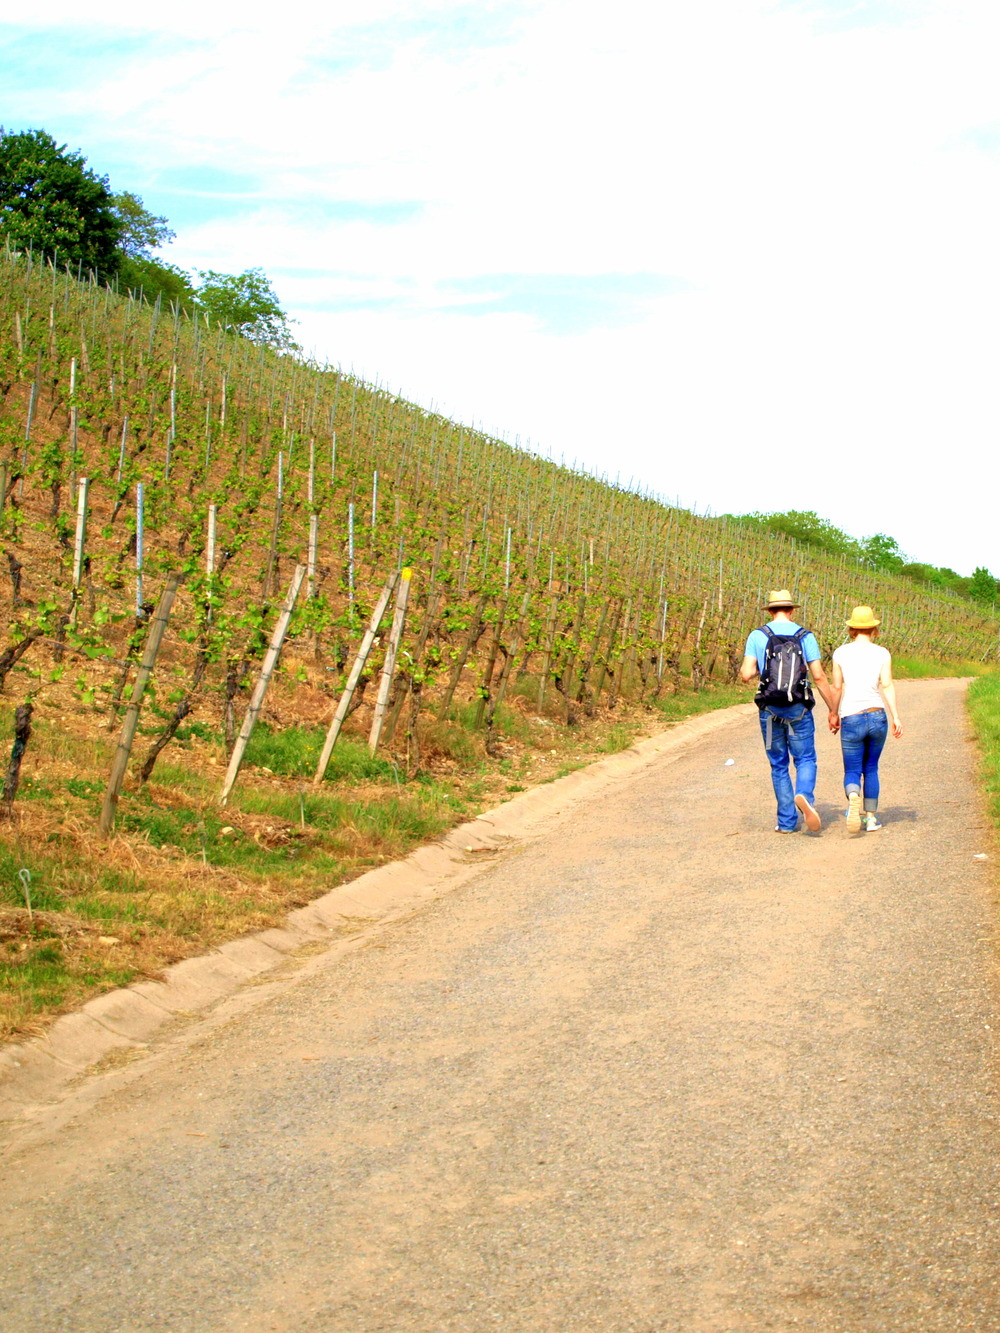 Wandering through the Randersacker vineyards.jpg